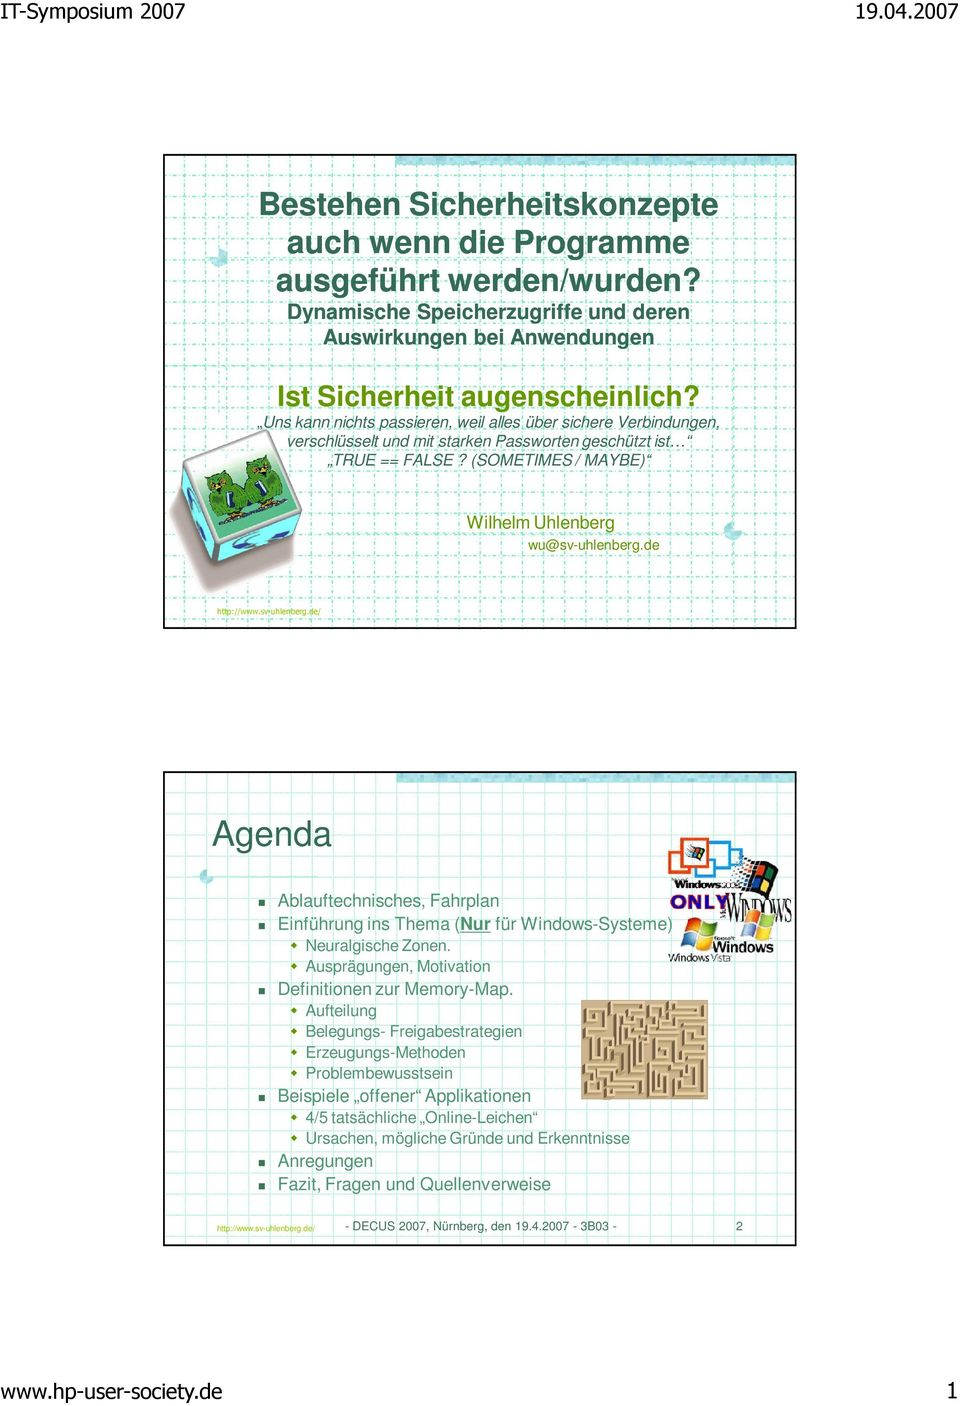 de Agenda Ablauftechnisches, Fahrplan Einführung ins Thema (Nur für Windows-Systeme) Neuralgische Zonen. Ausprägungen, Motivation Definitionen zur Memory-Map.